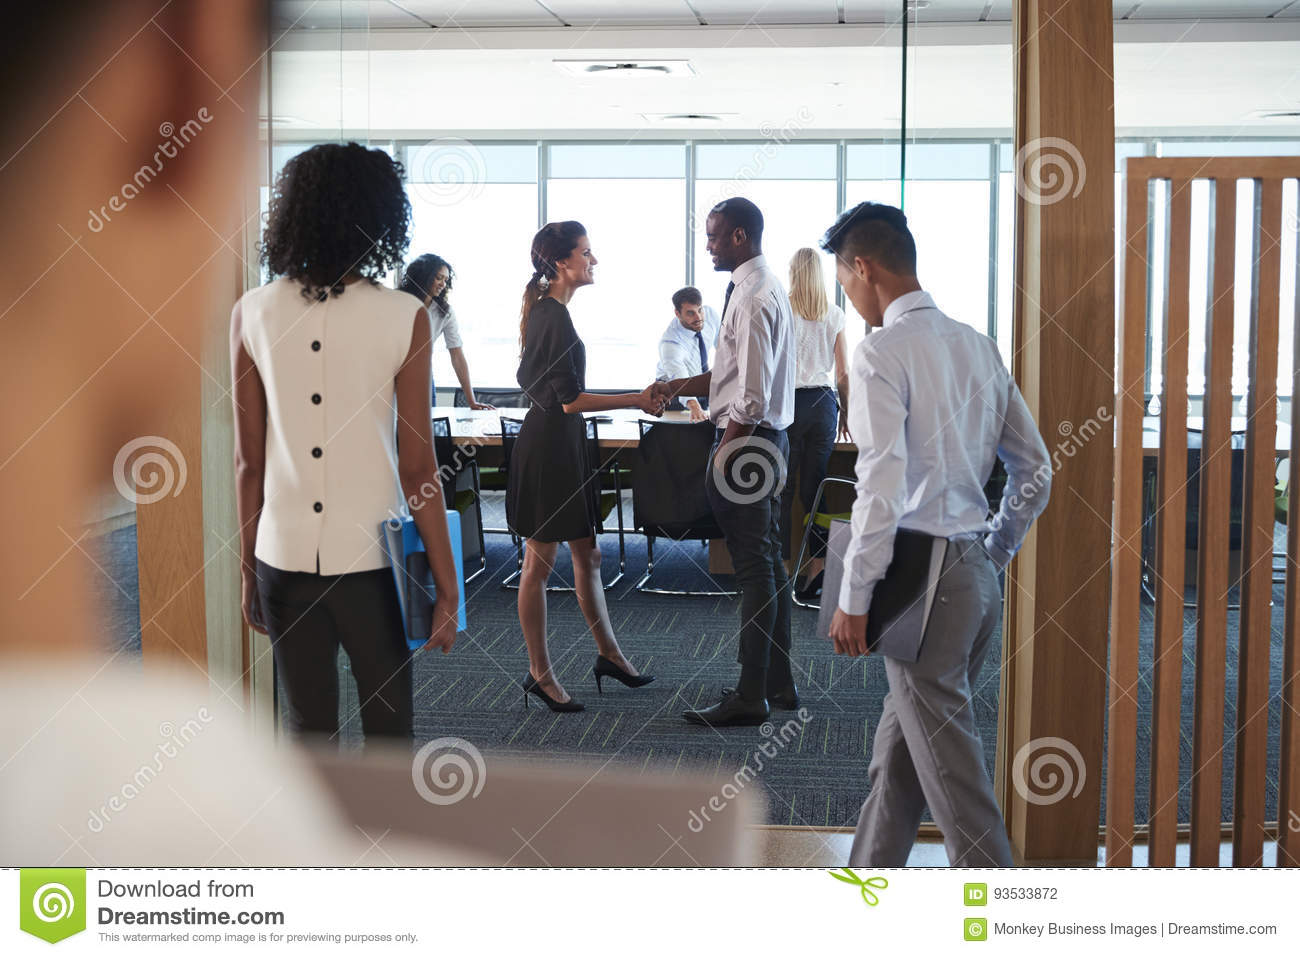 Rear View Of Businesspeople Entering Boardroom For Meeting